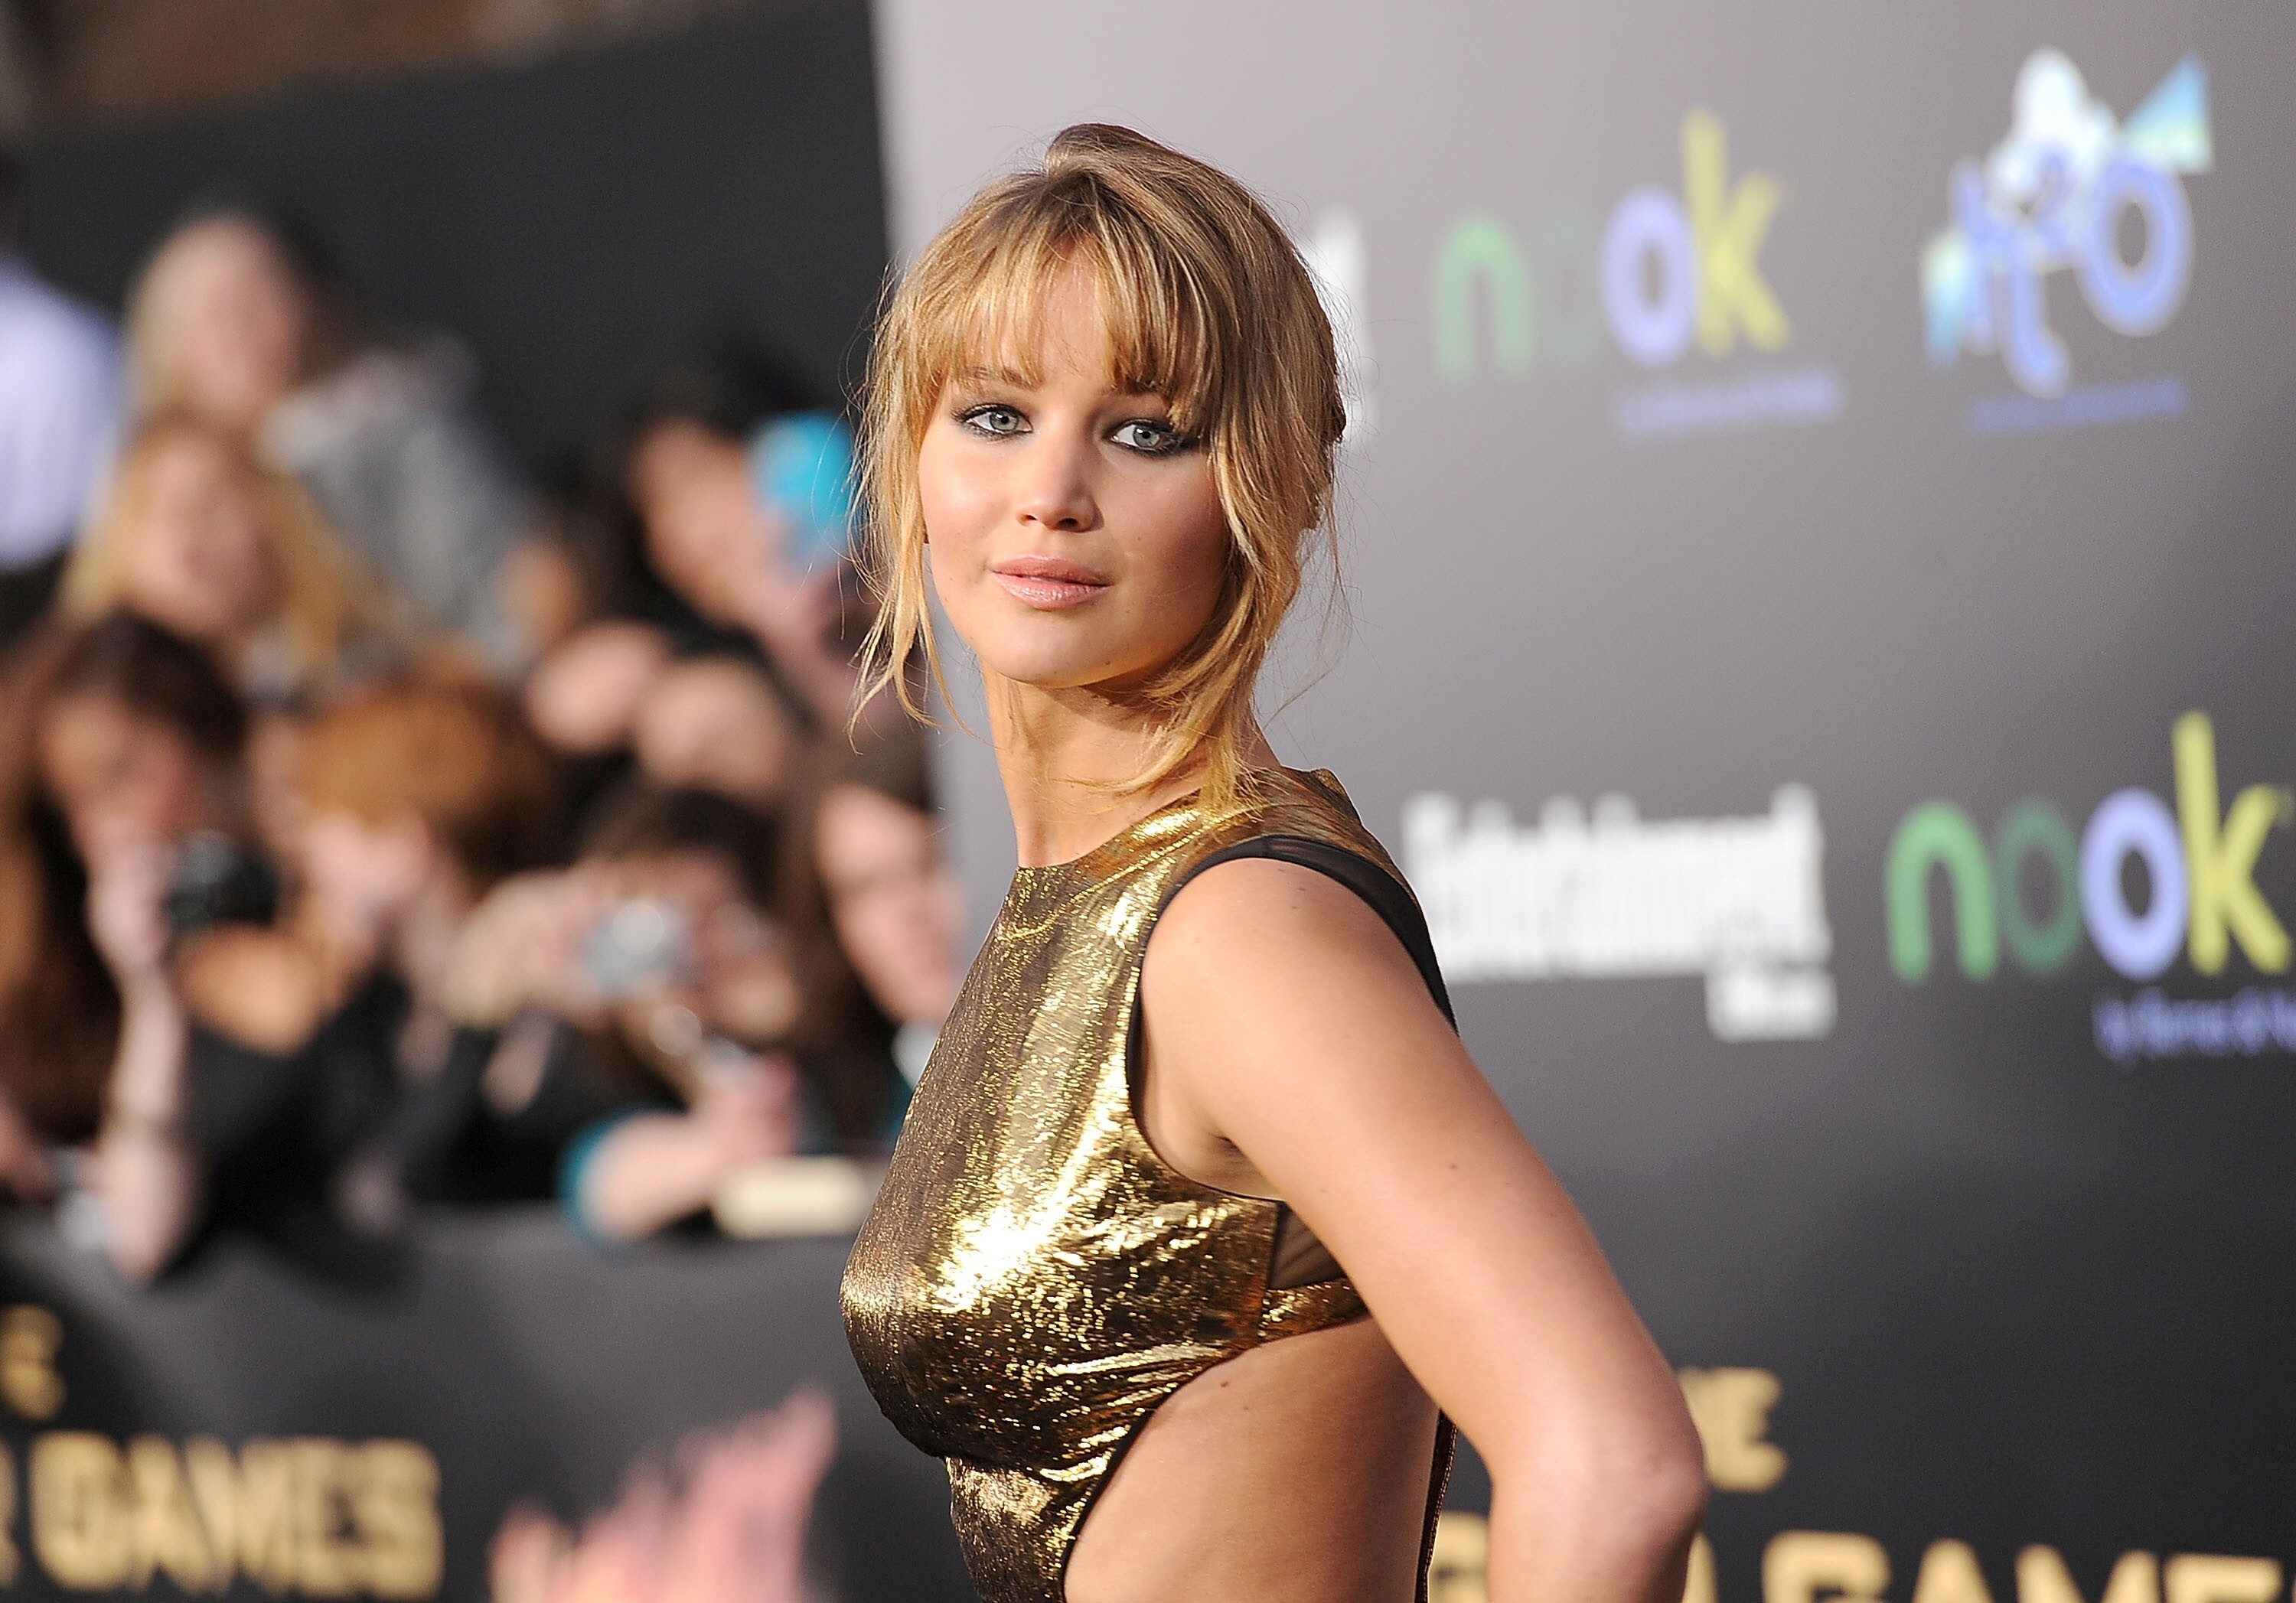 Hot Hollywood Actress Jennifer Lawrence Wallpapers Hd Wallpapers